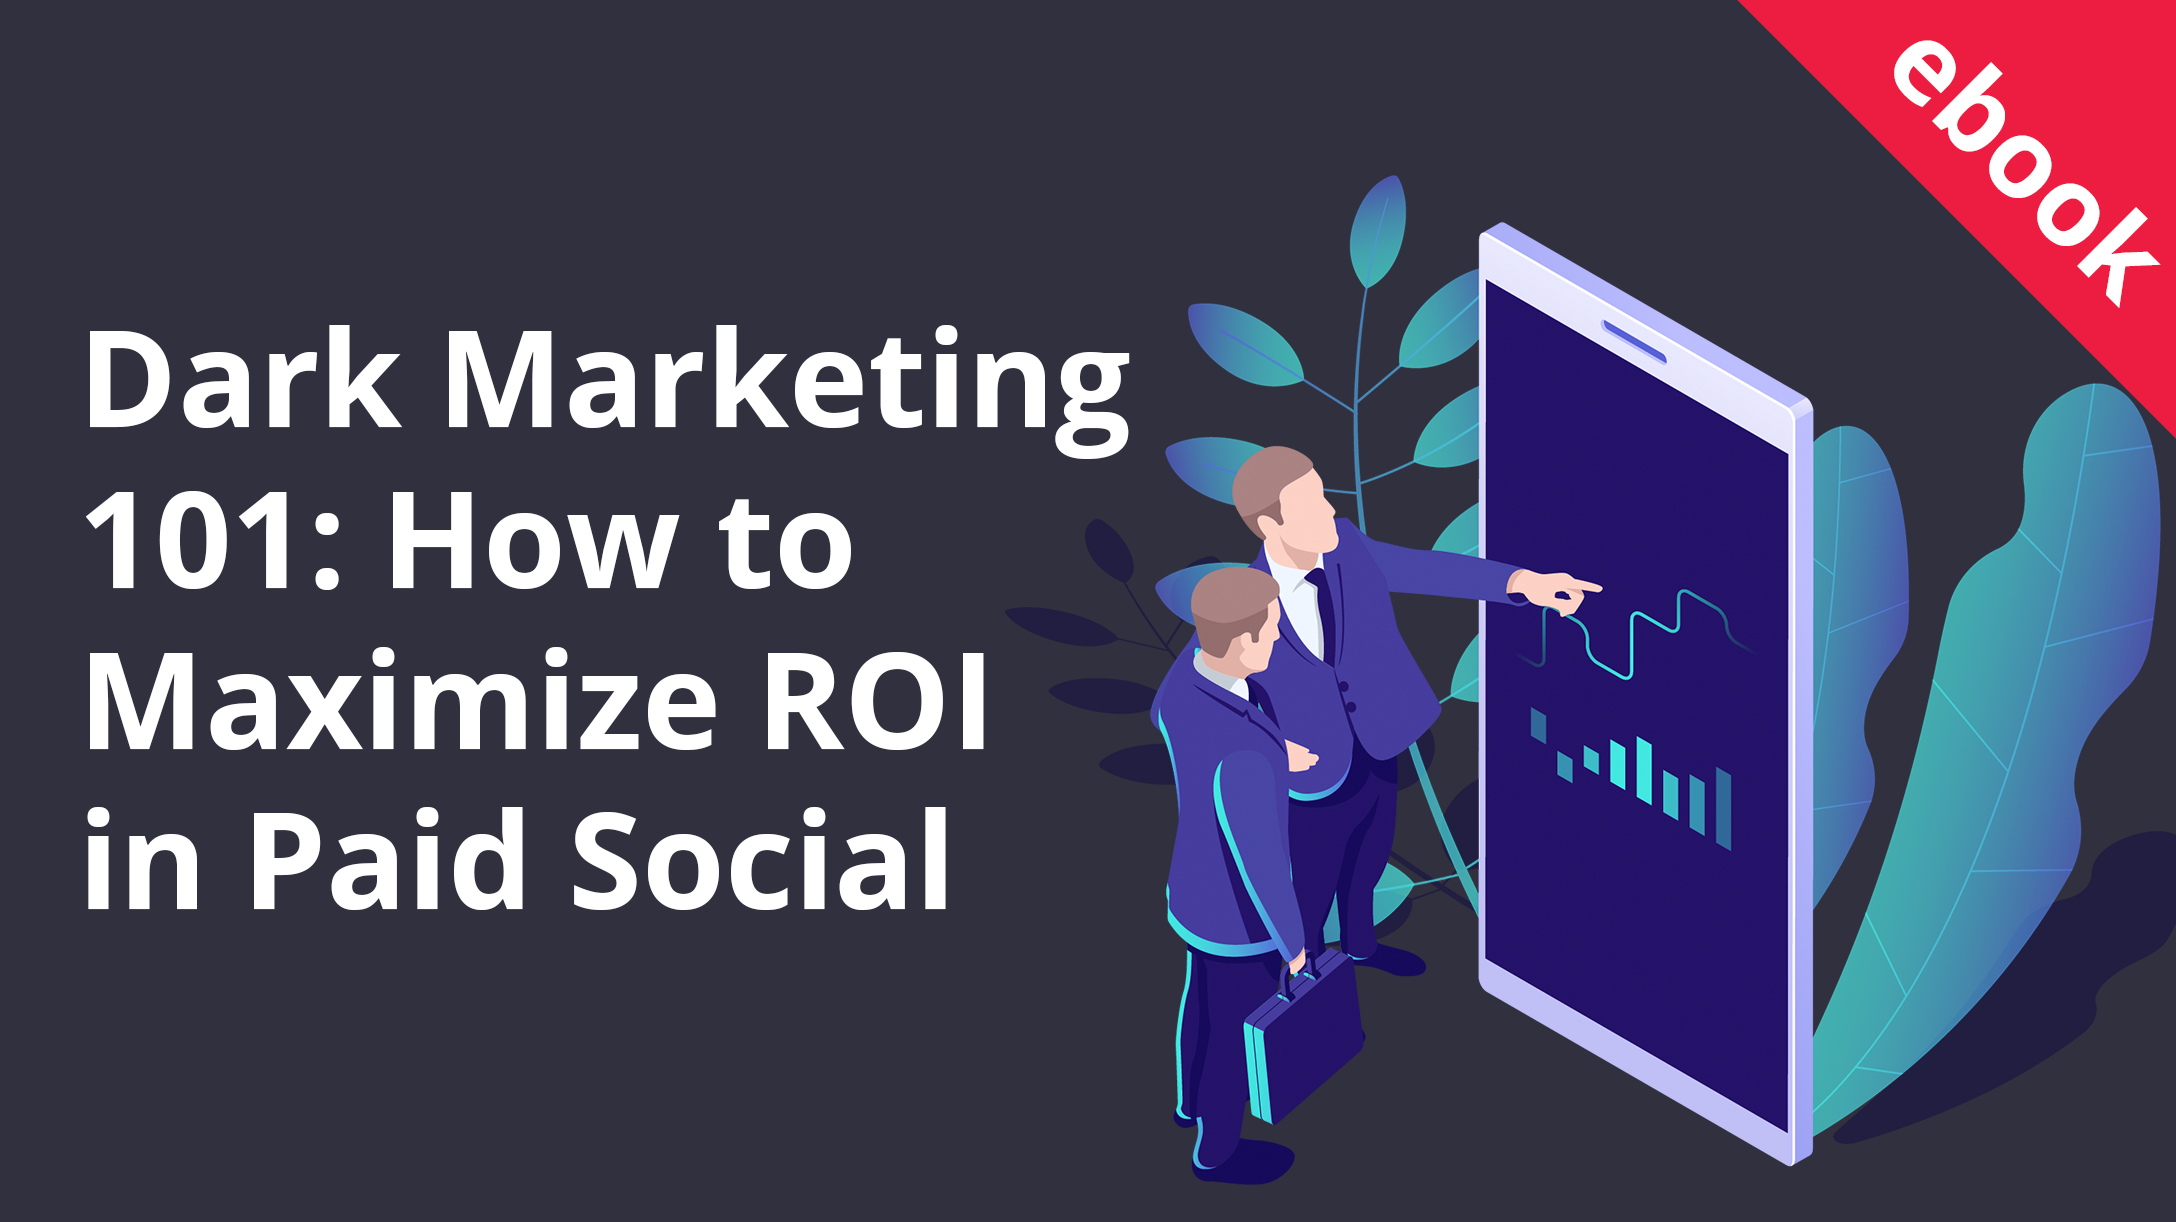 Dark Marketing 101: How to Maximize ROI in Paid Social